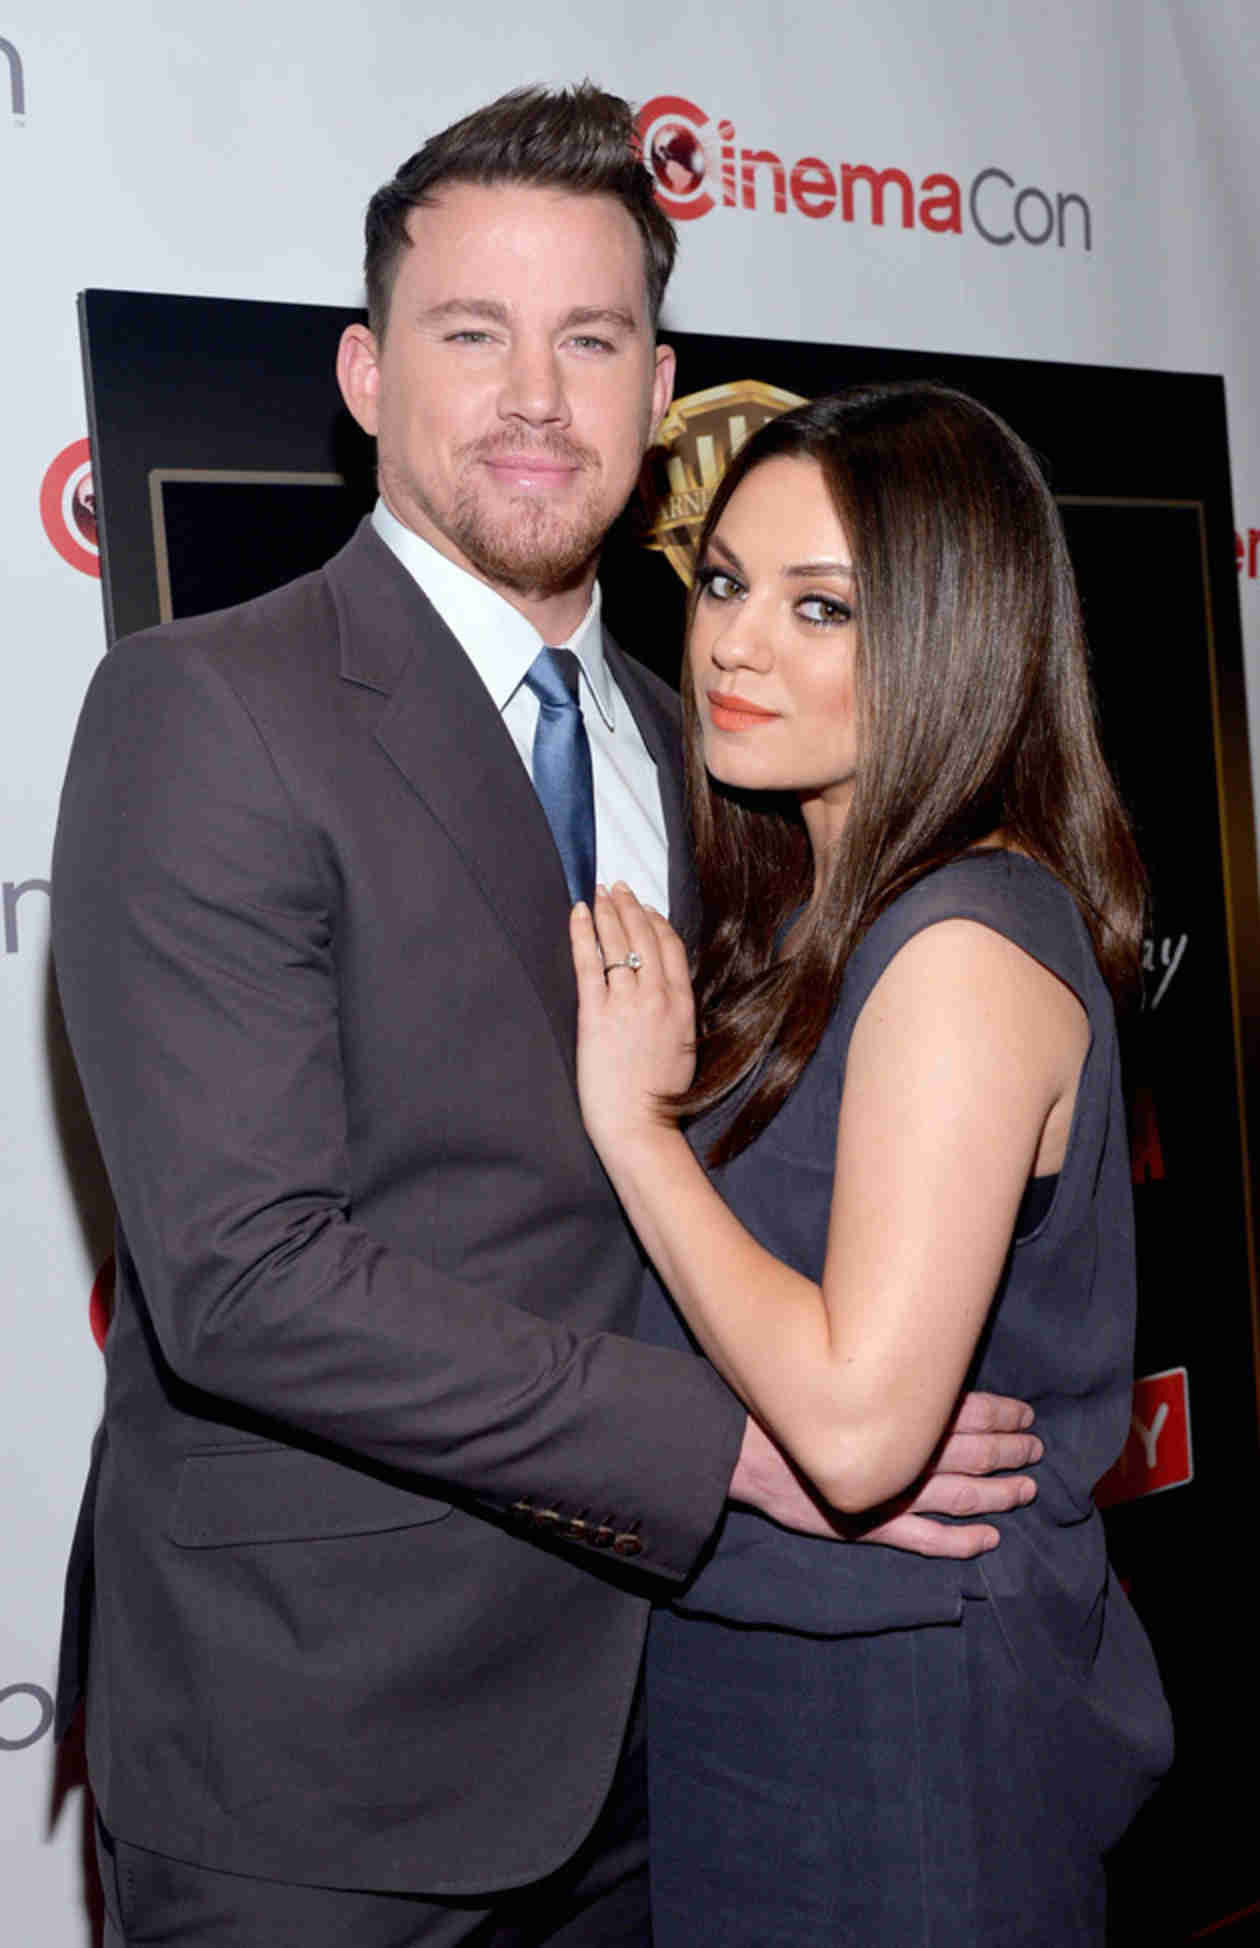 Pregnant Mila Kunis Flaunts Baby Bump on the Red Carpet With Channing Tatum